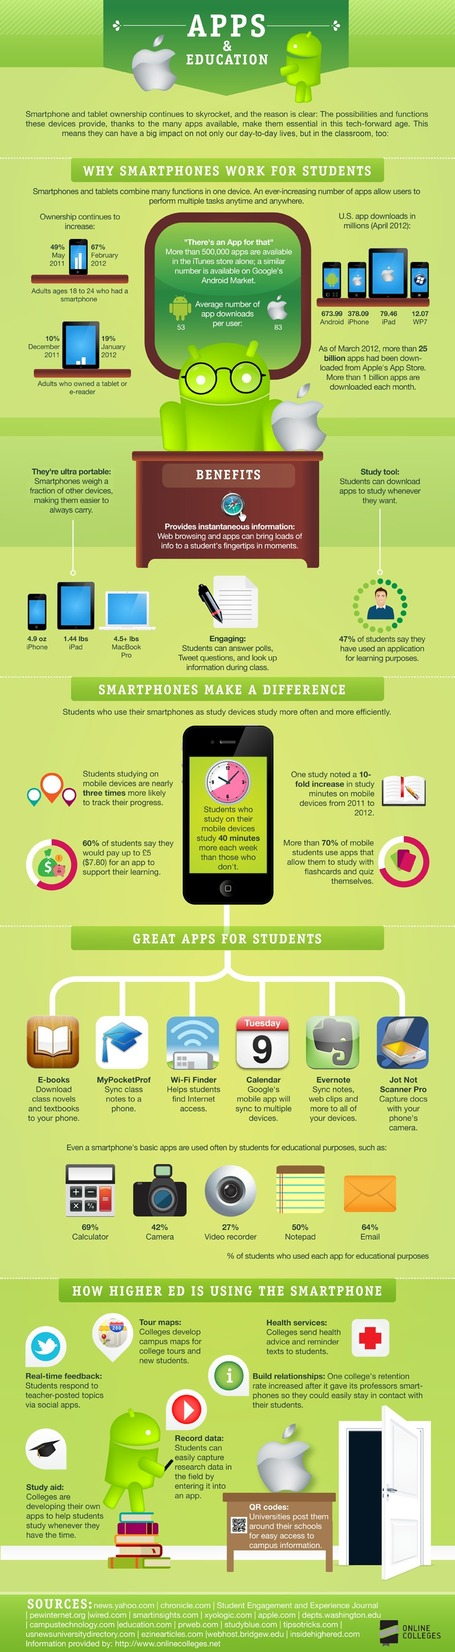 Mobile Learning and Education - MediaCAST Blog | UDL & ICT in education | Scoop.it